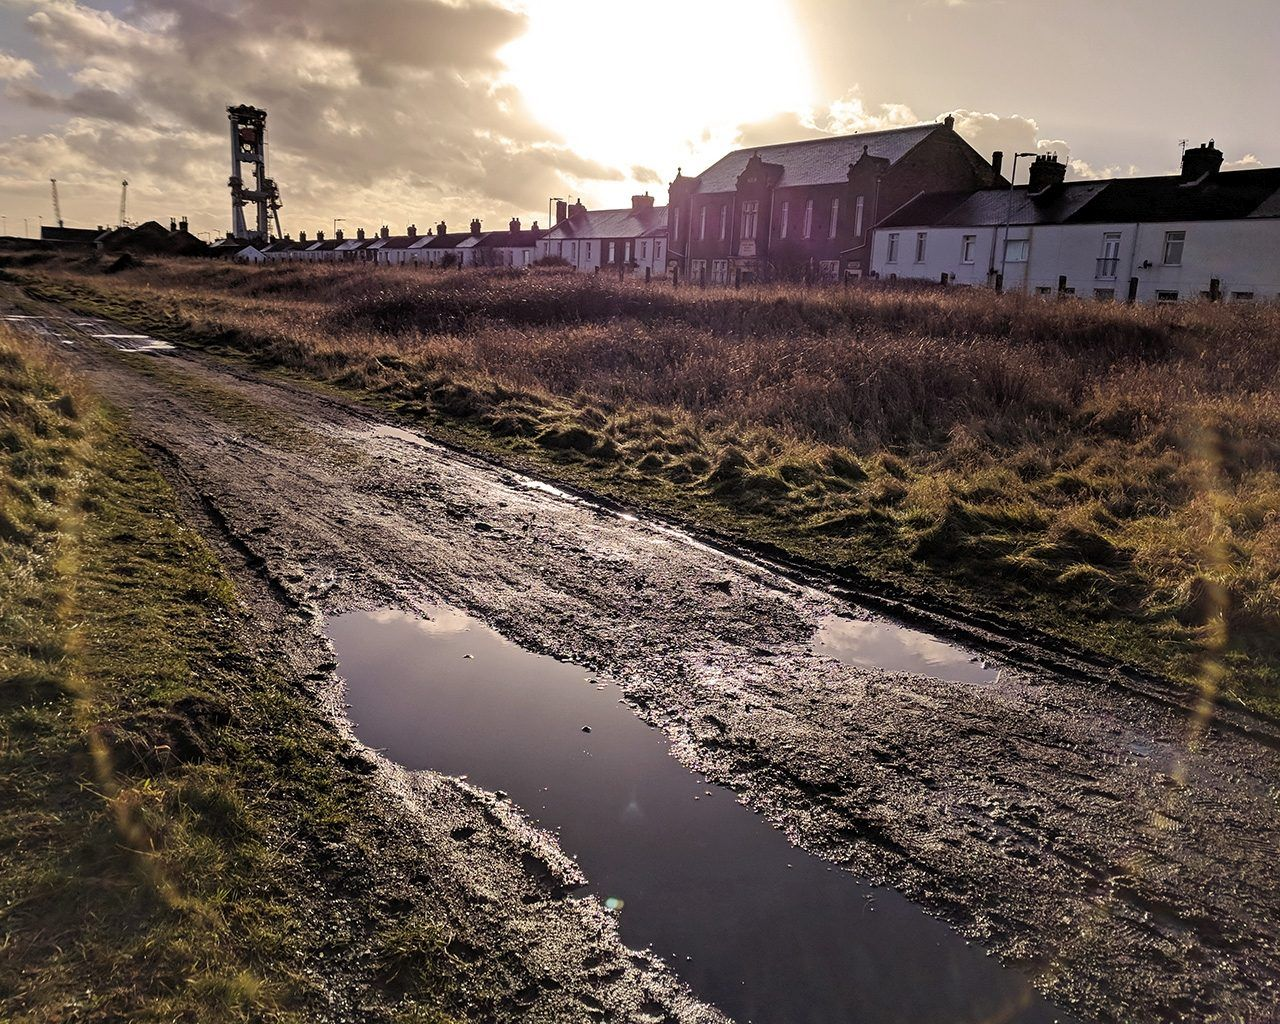 A muddy road at sunset in England